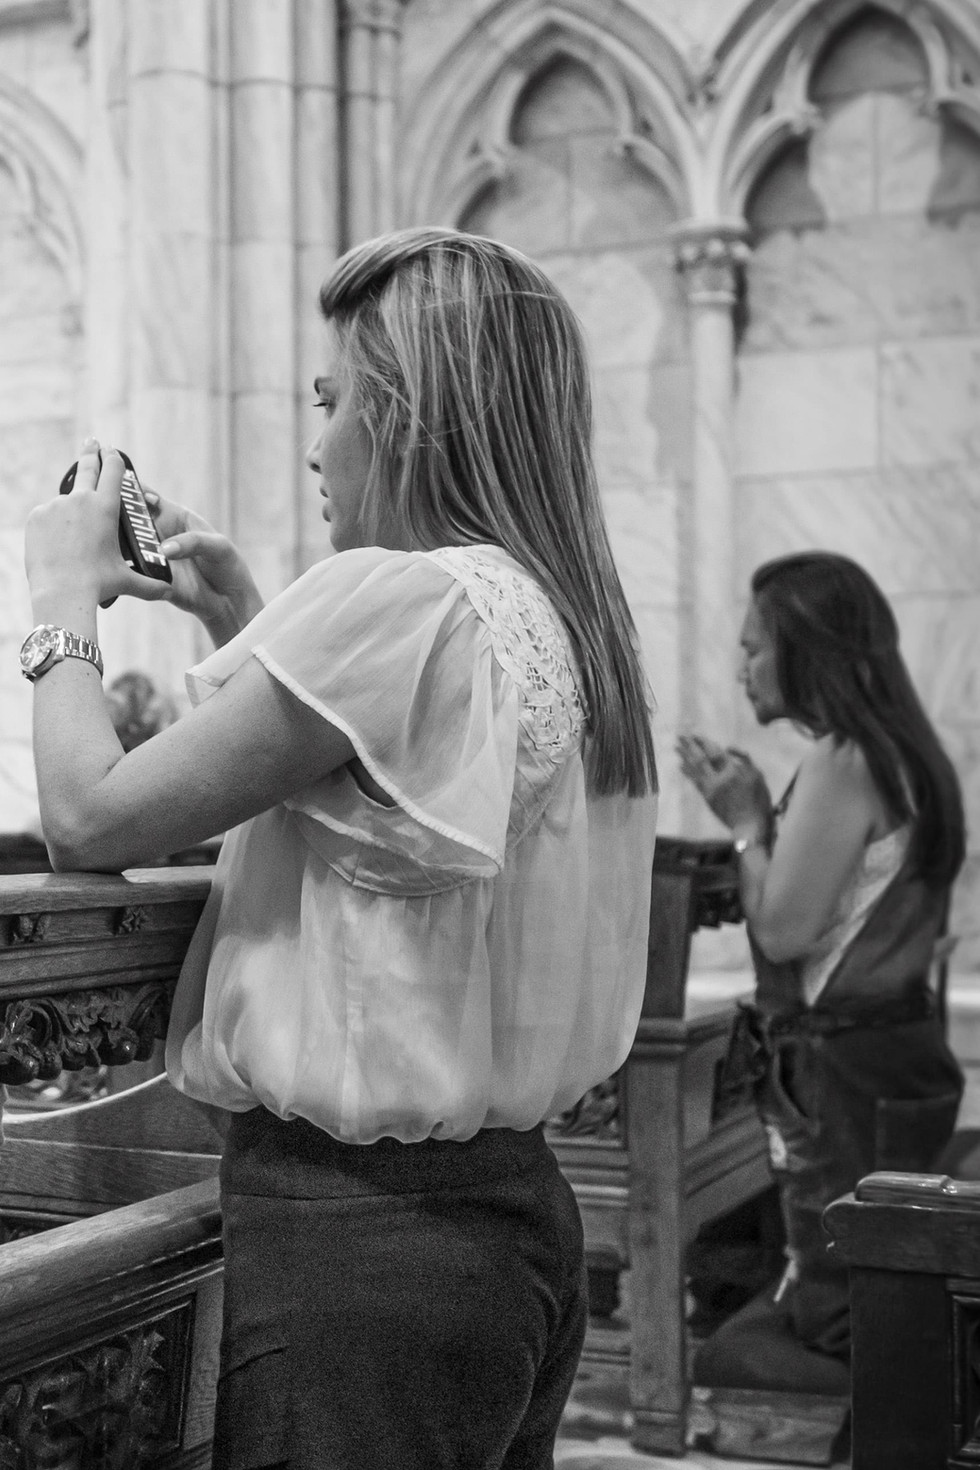 August 10, 2015. Saint Patrick's Cathedral, New York.